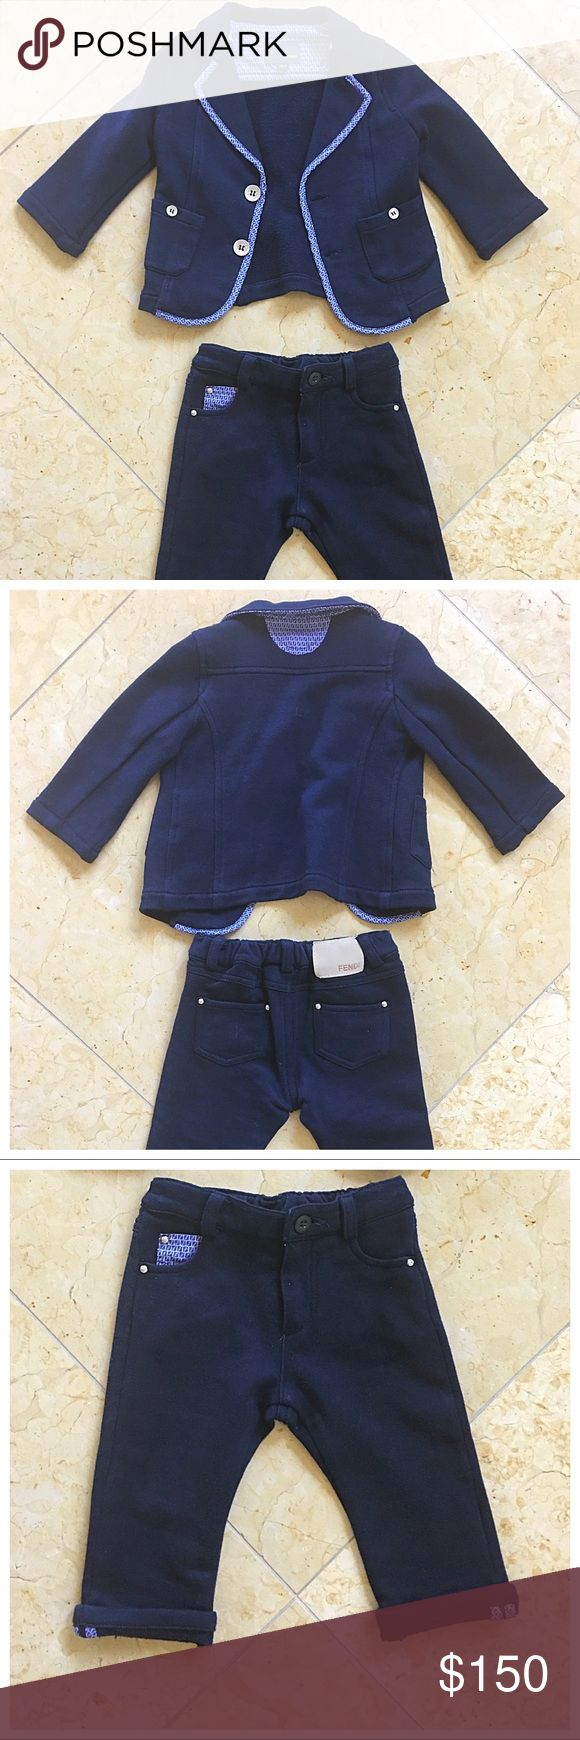 Fendi Baby Navy Suit Fendi navy blue suit for your dapper baby. Soft 100% cotton. Worn once. Size 12 months. Great outfit for the holidays or special occasion. Fendi Matching Sets